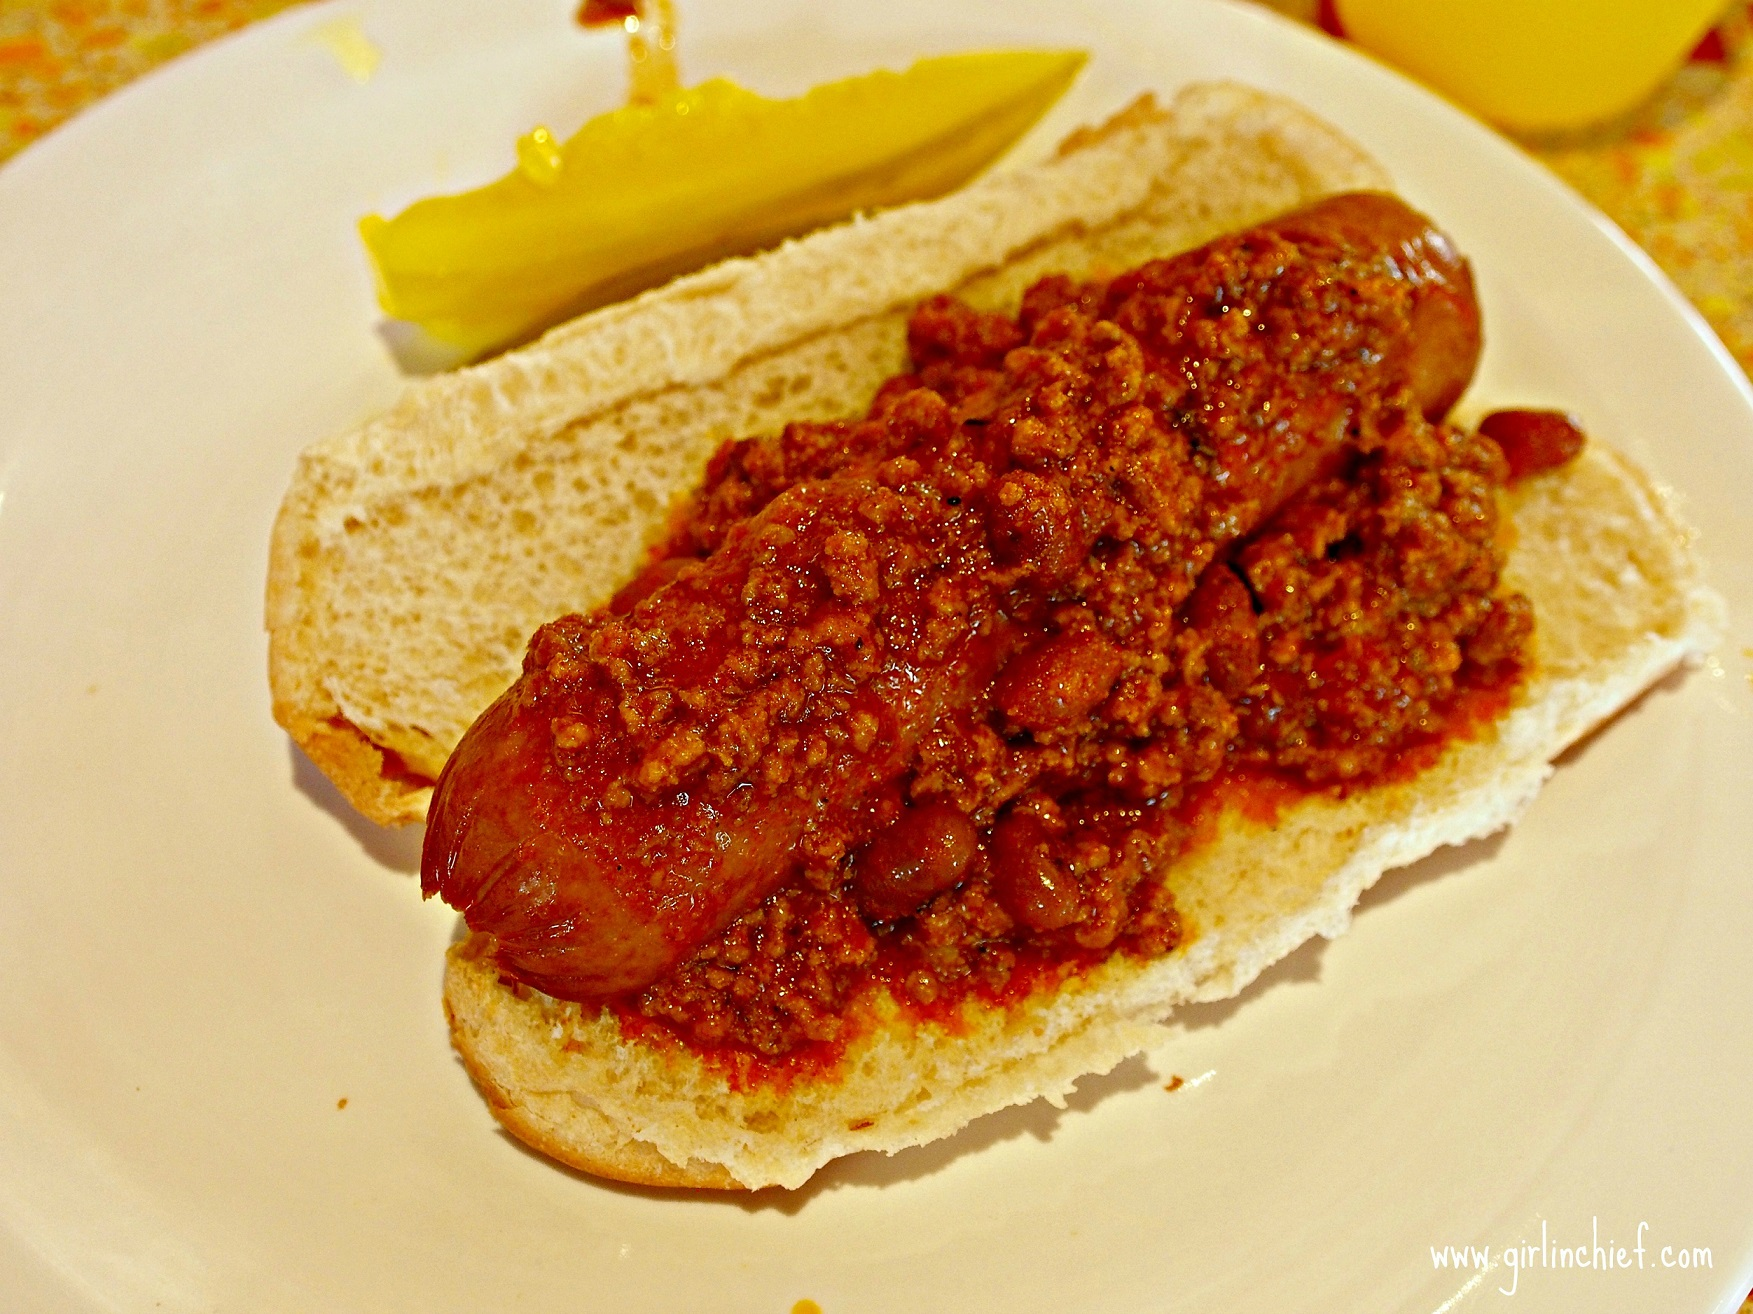 hot-dog-with-chili-carnival-freedom-deli